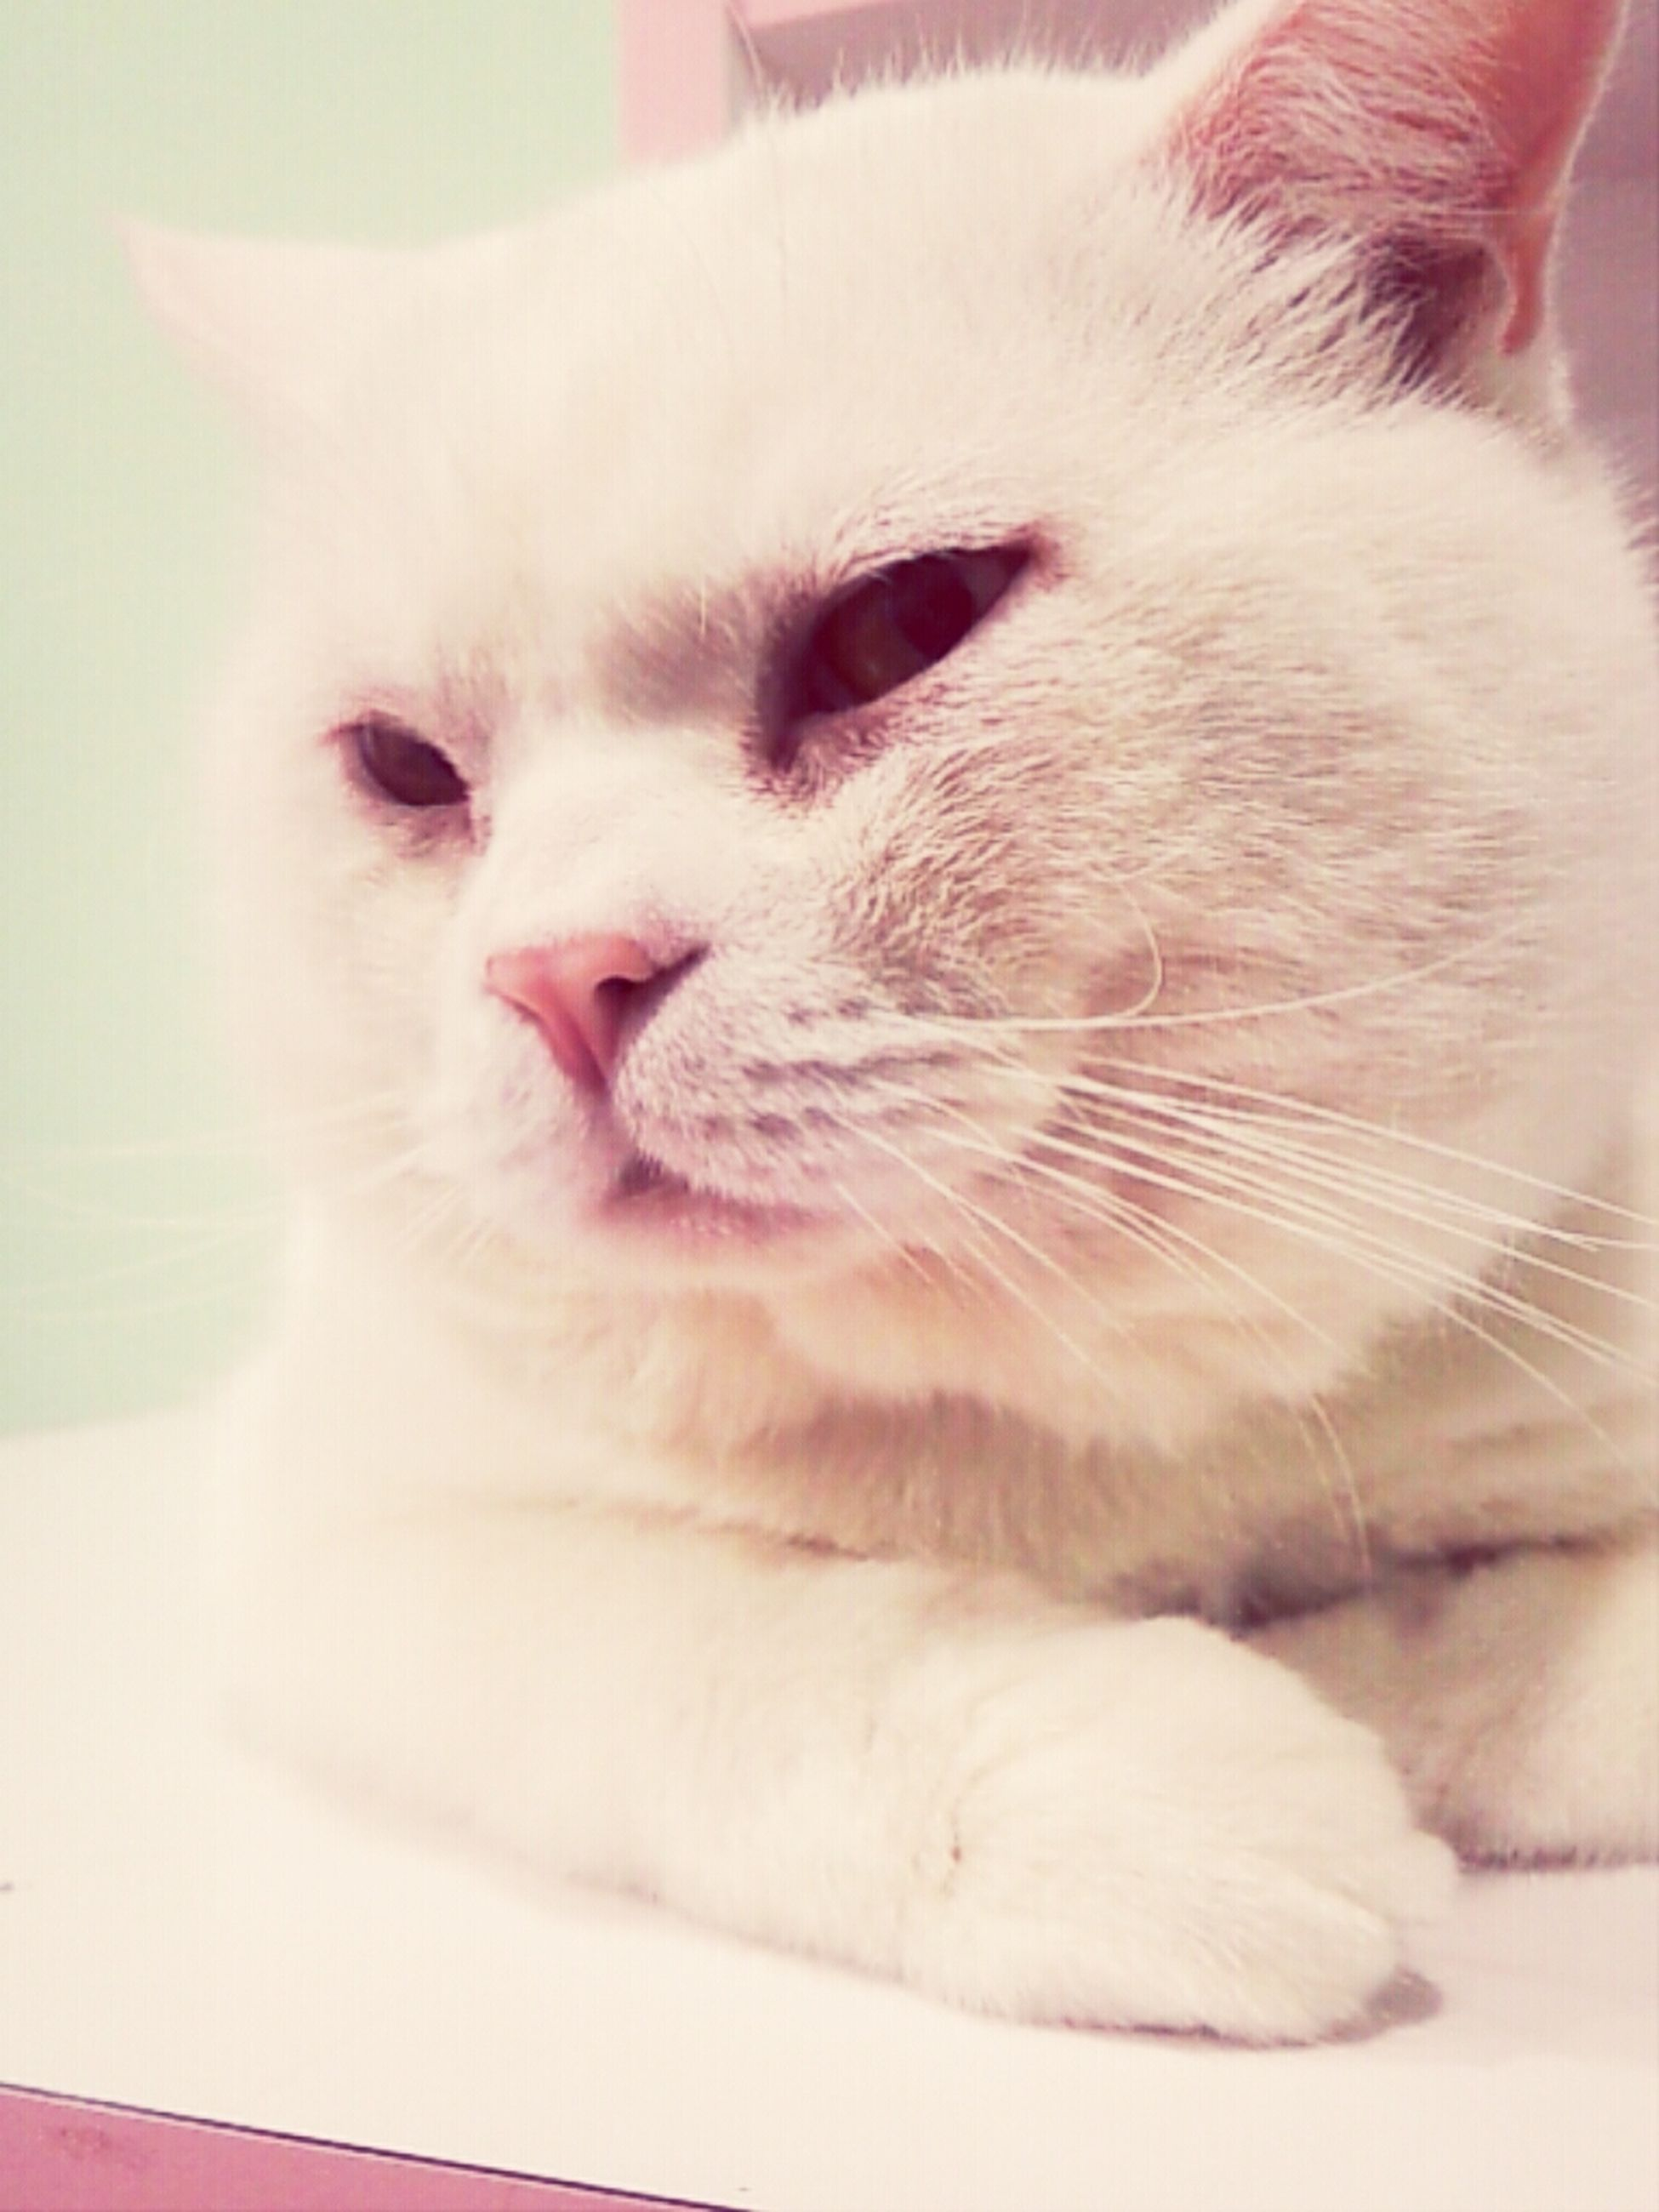 domestic animals, pets, domestic cat, cat, animal themes, one animal, mammal, indoors, feline, whisker, close-up, animal head, home interior, focus on foreground, white color, no people, portrait, relaxation, looking at camera, animal body part